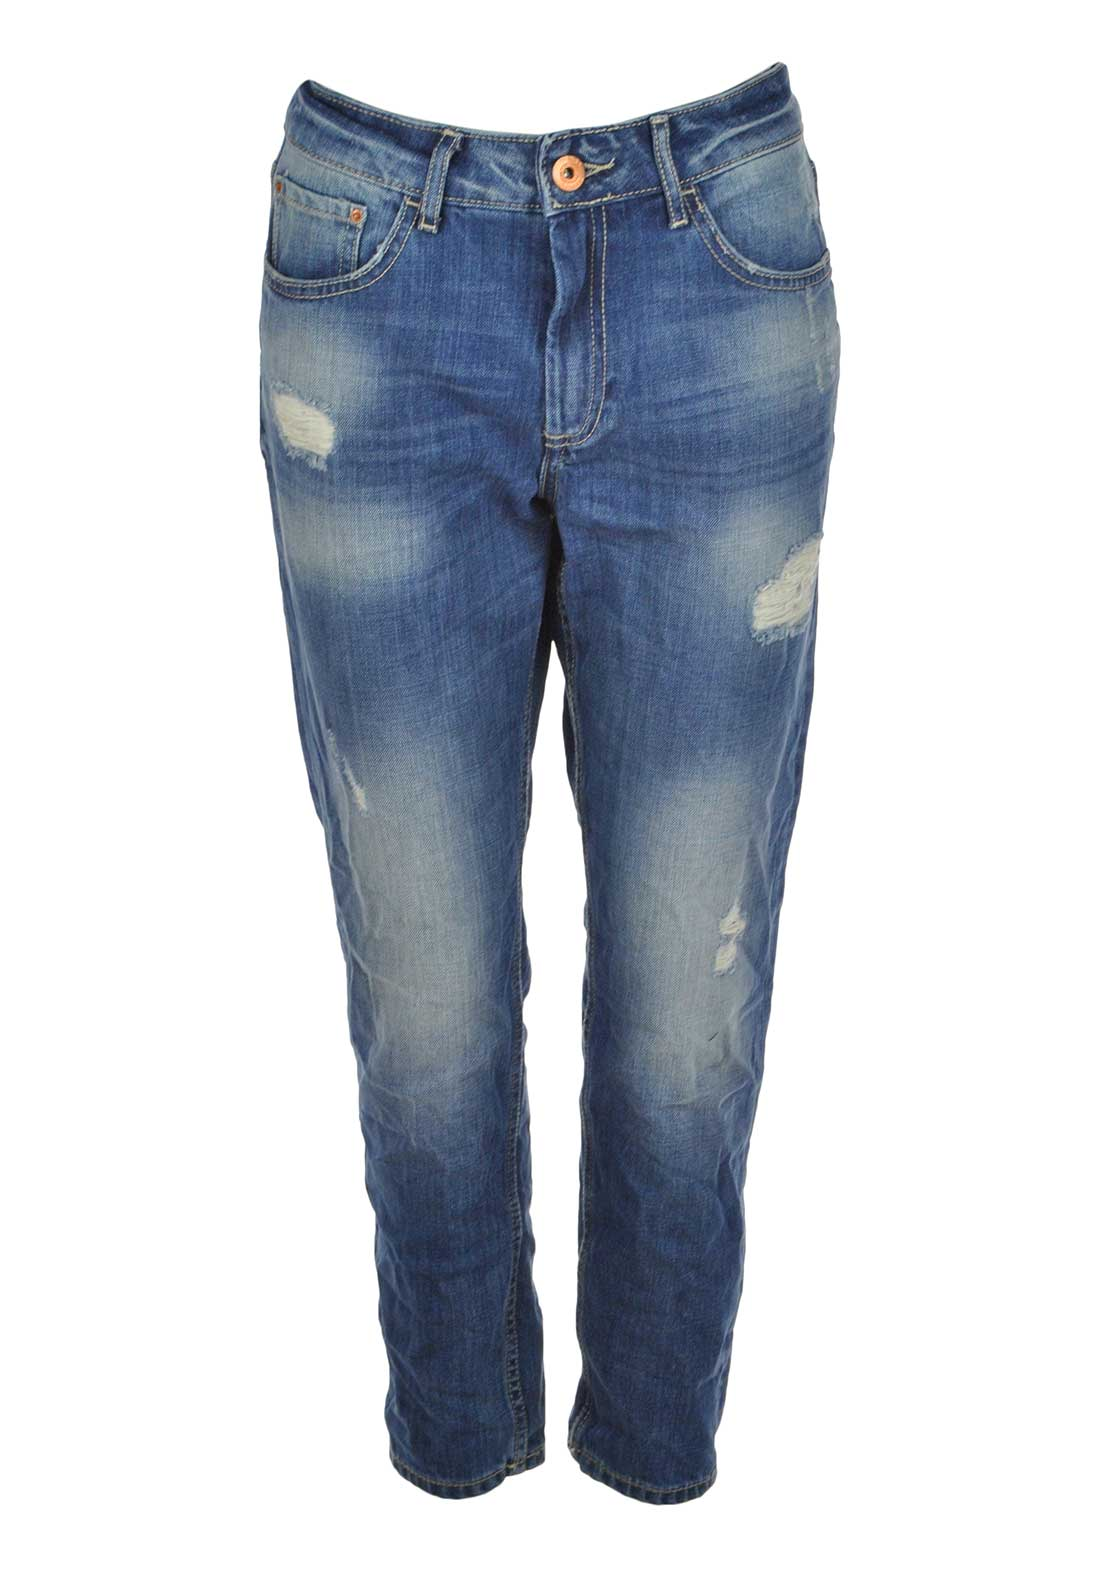 Tiffosi Mom 2 Ripped Straight Leg Jeans, Light Blue Denim